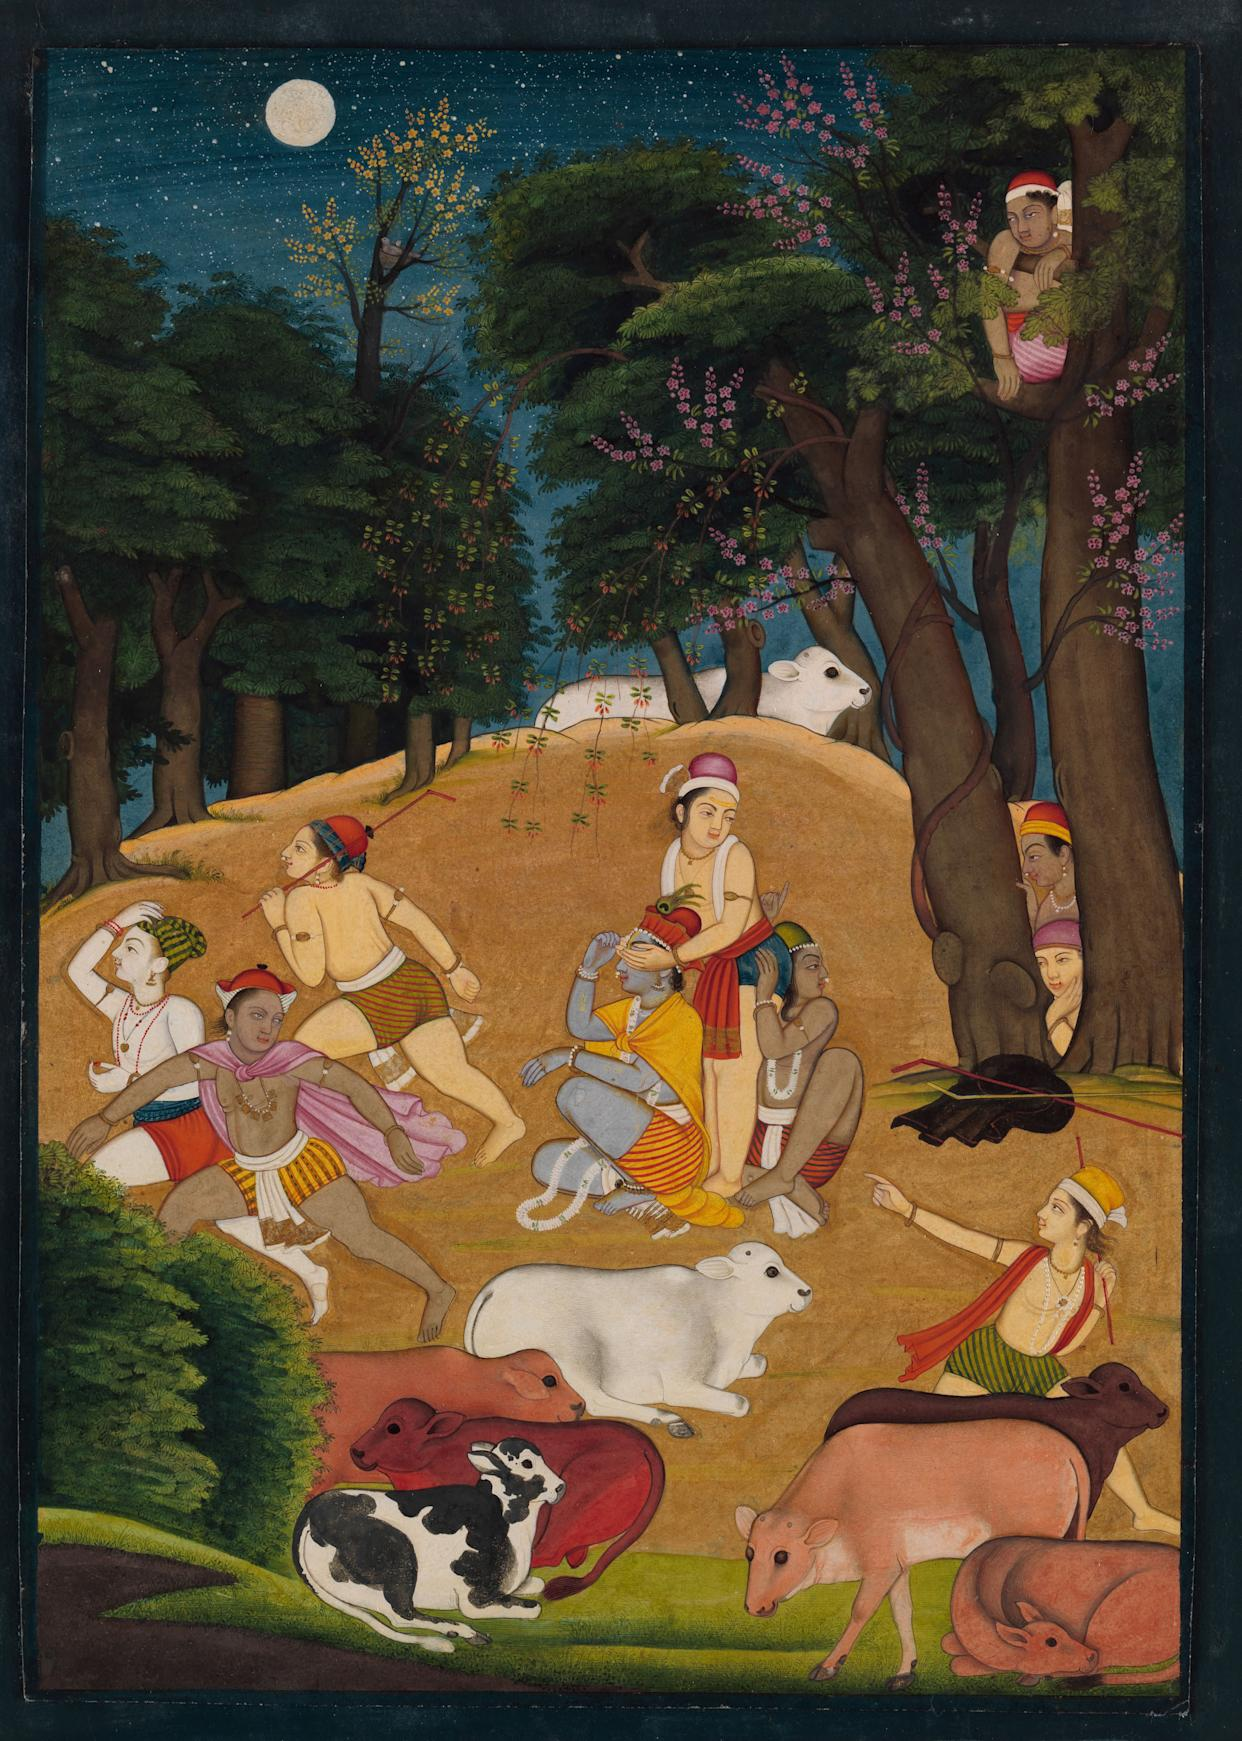 """""""Hide-and-Seek: Krishna Playing a Game with theGopas (Cowherds)""""Ascribed to the artist Manaku (ca. 1700–ca. 1760)Punjab Hills, kingdom of Guler, ca. 1750–55.Opaque watercolor, ink, and gold on paper; narrowdark blue border (probably trimmed); painting 9 5/8 x 6. Promised Gift of the Kronos Collections, 2015."""